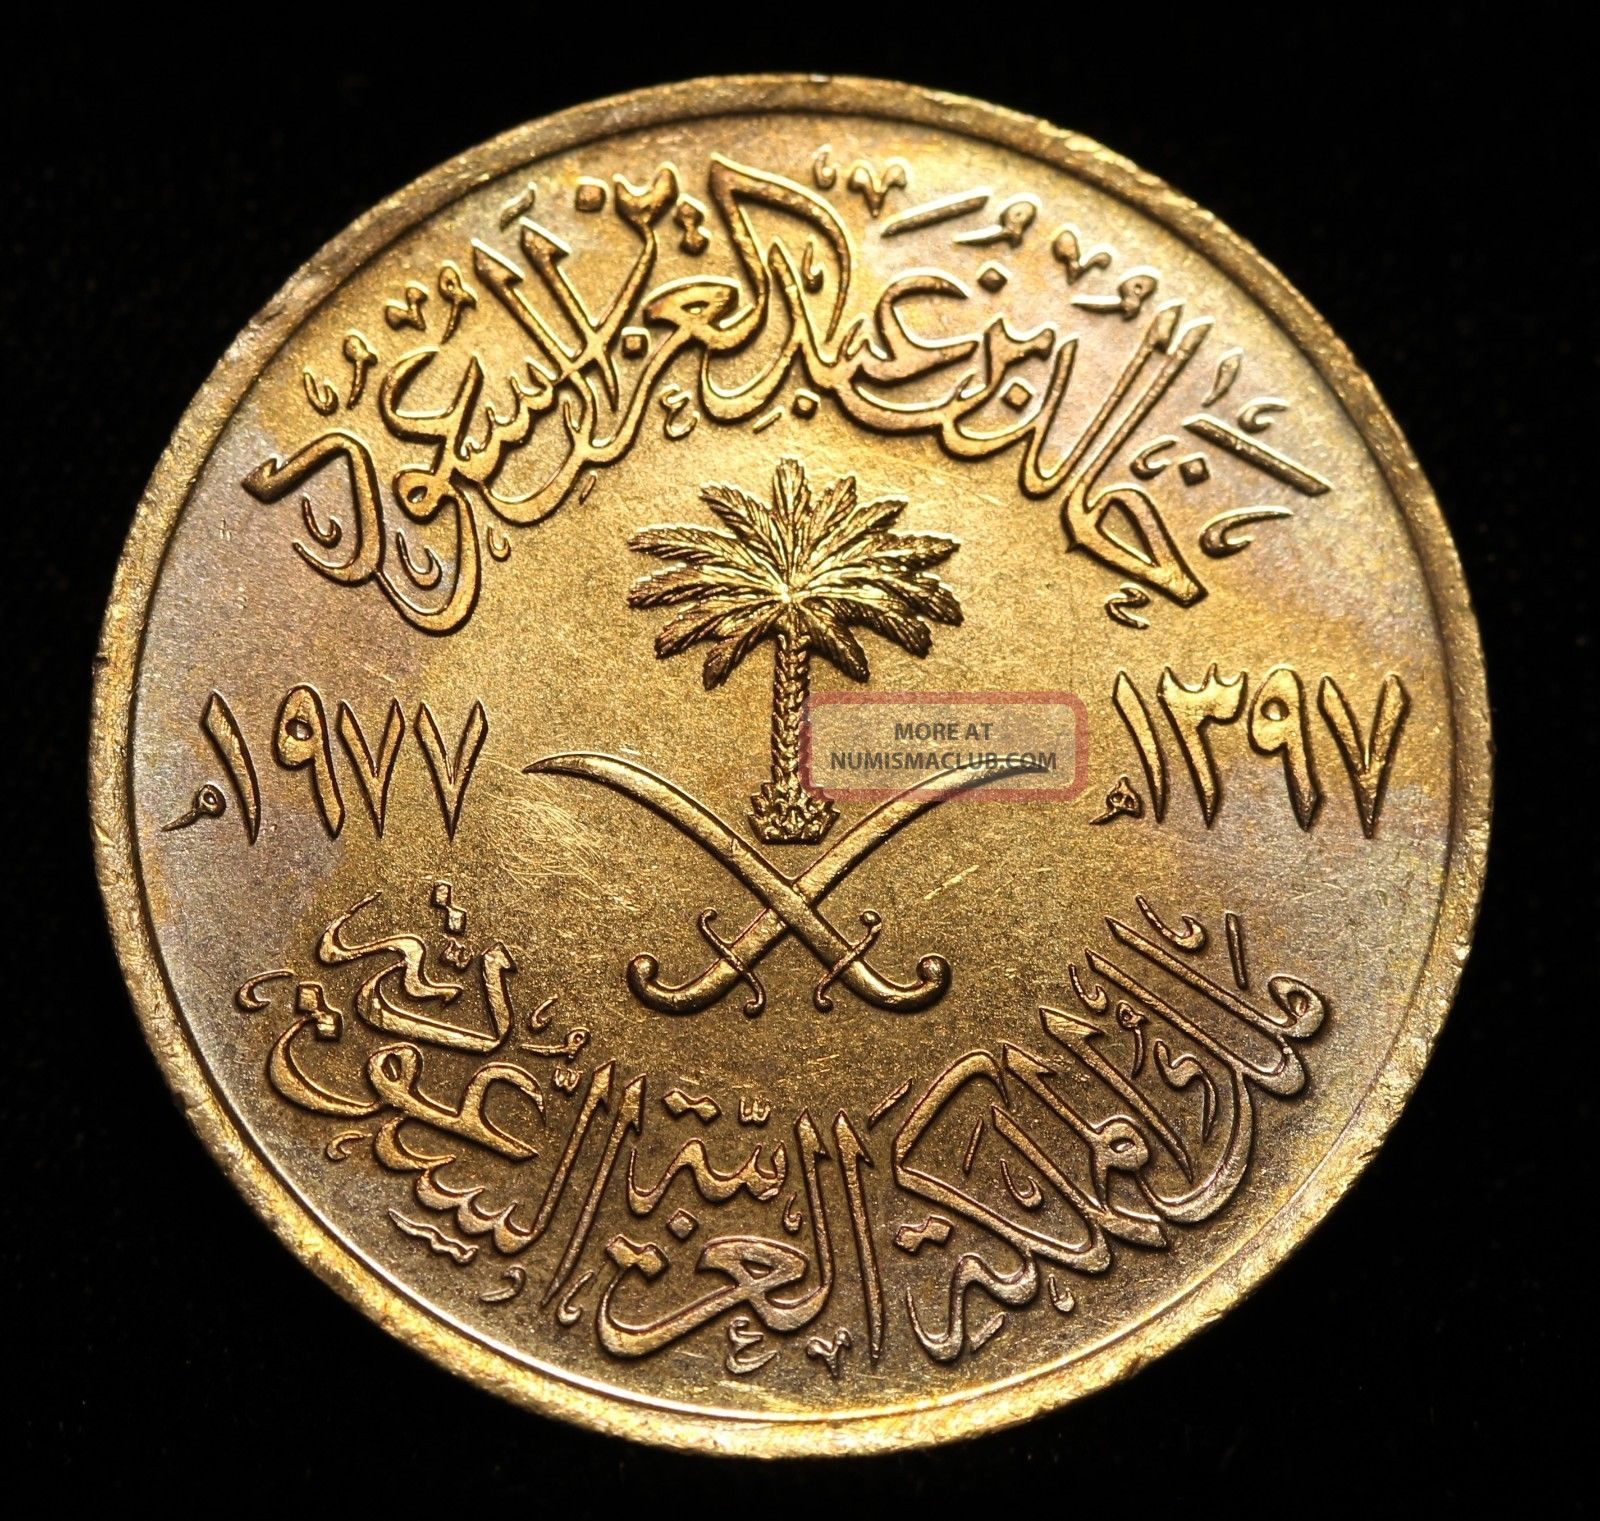 Saudi Arabia 100 Halala (riyal) Ah1397 (1977) British Royal Presentation Rare Middle East photo